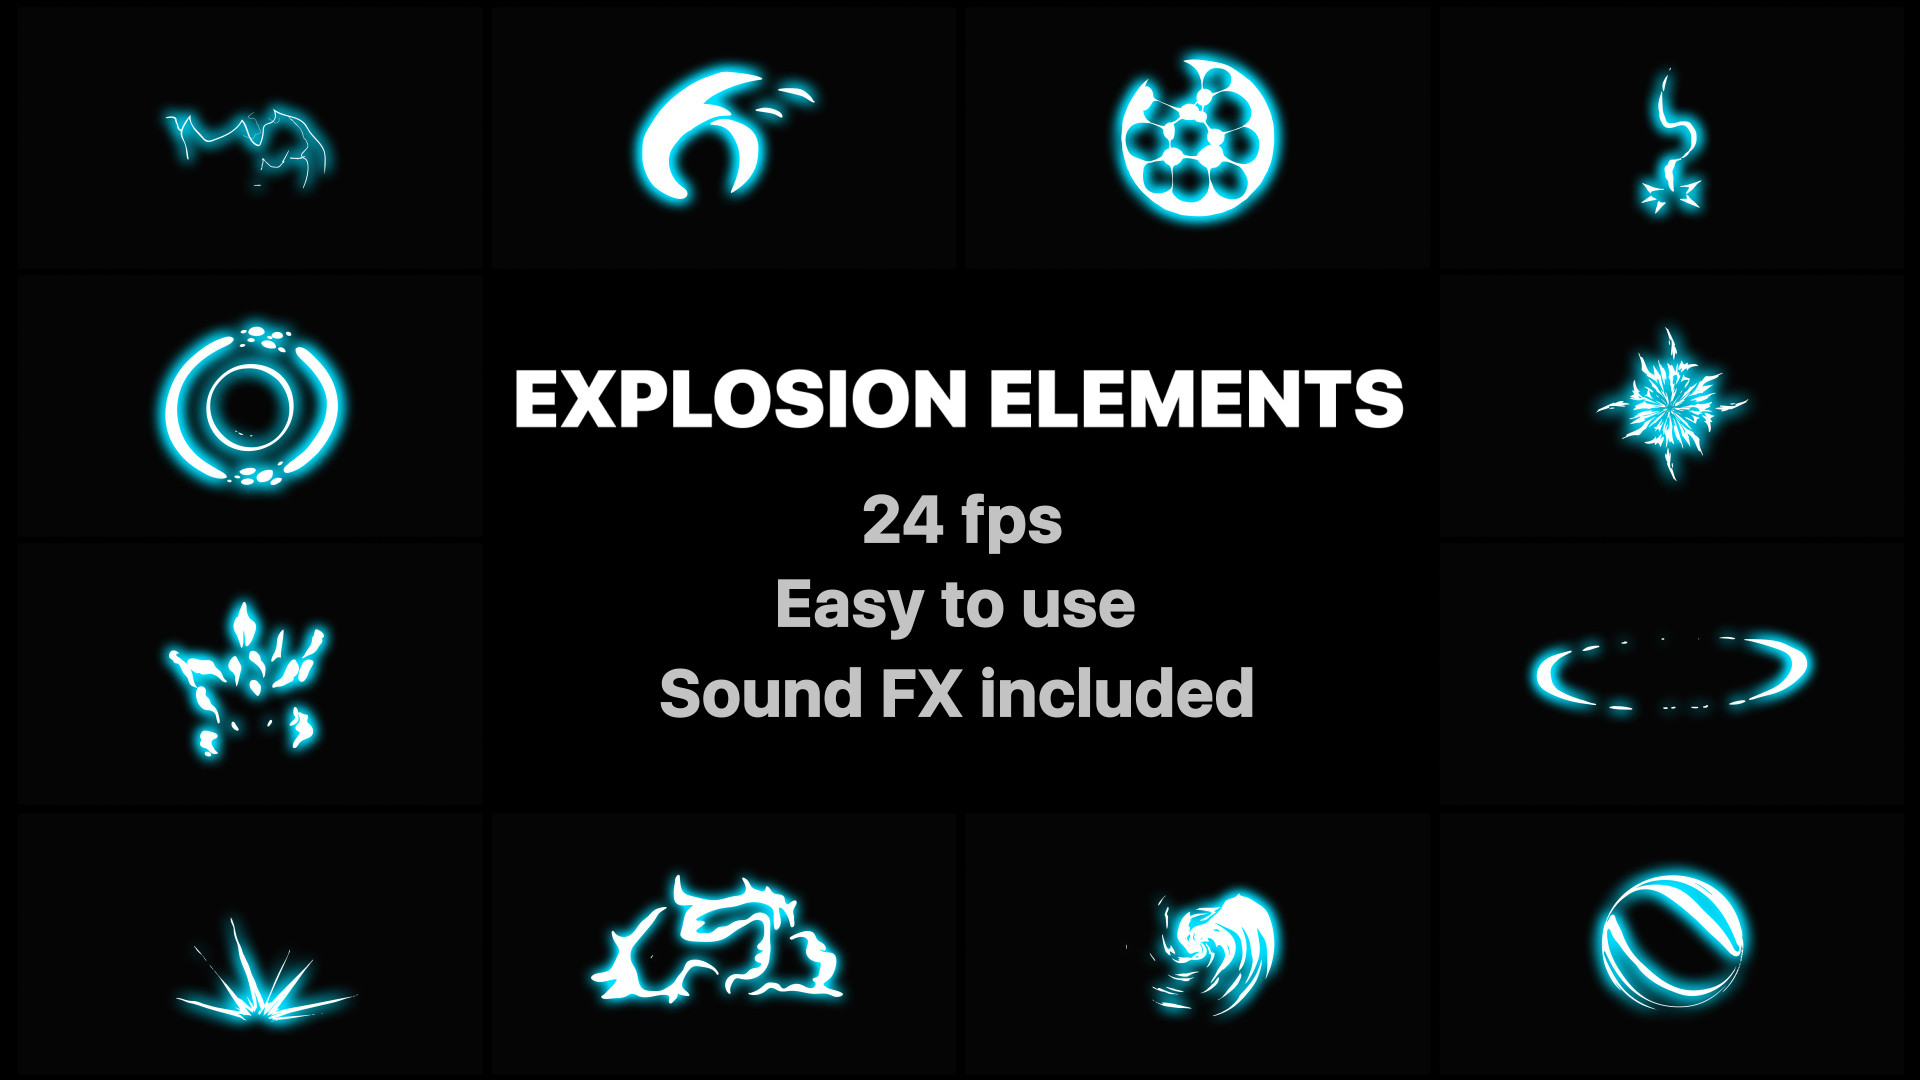 Energy Explosion Elements 80191 - Free Download